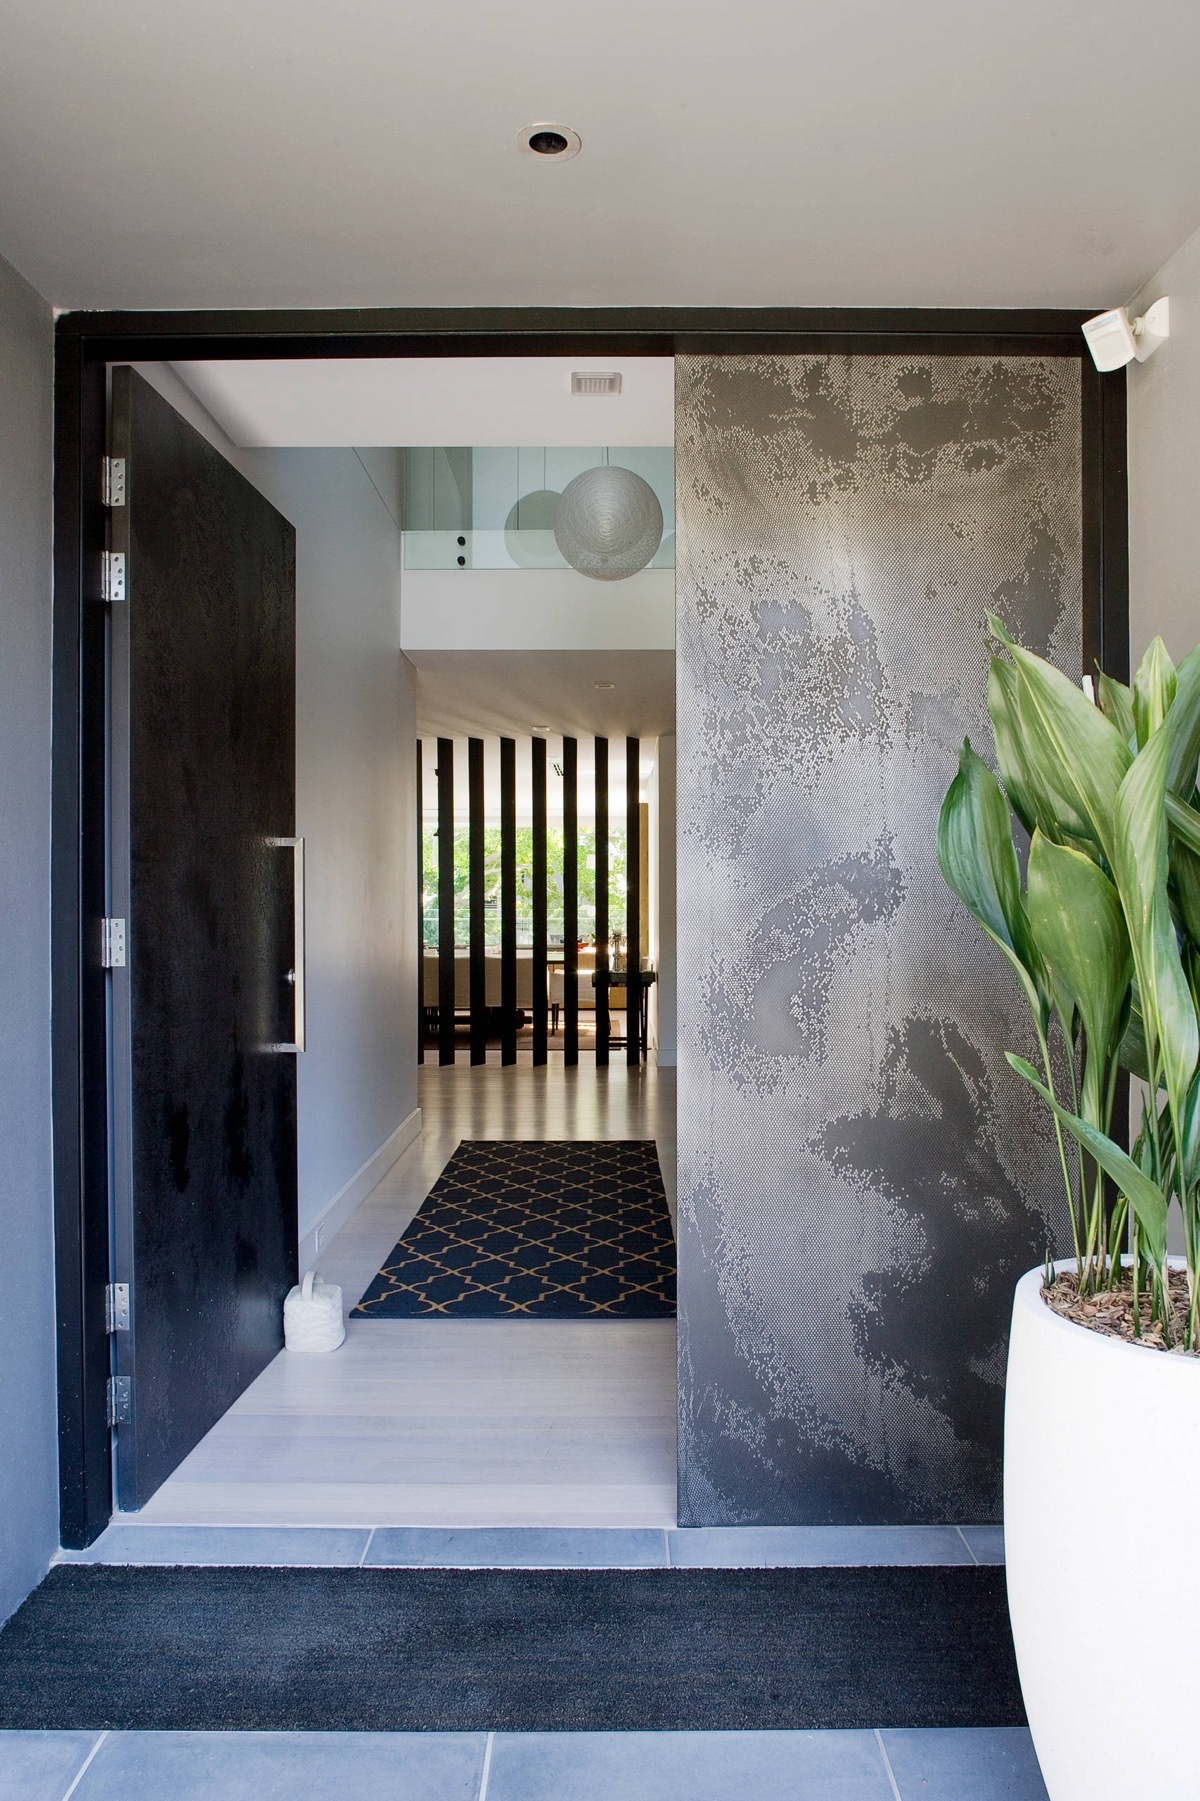 50 Modern Front Door Designs on grand staircase designs for homes, wall designs for homes, window designs for homes, bar designs for homes, roof designs for homes, front gate designs for homes, basement designs for homes, light designs for homes, ramp designs for homes, garden designs for homes, facade designs for homes, fence designs for homes, sidewalk designs for homes, office designs for homes, lighting designs for homes, glass designs for homes, interior staircase designs for homes, kitchen designs for homes, patio designs for homes, gym designs for homes,